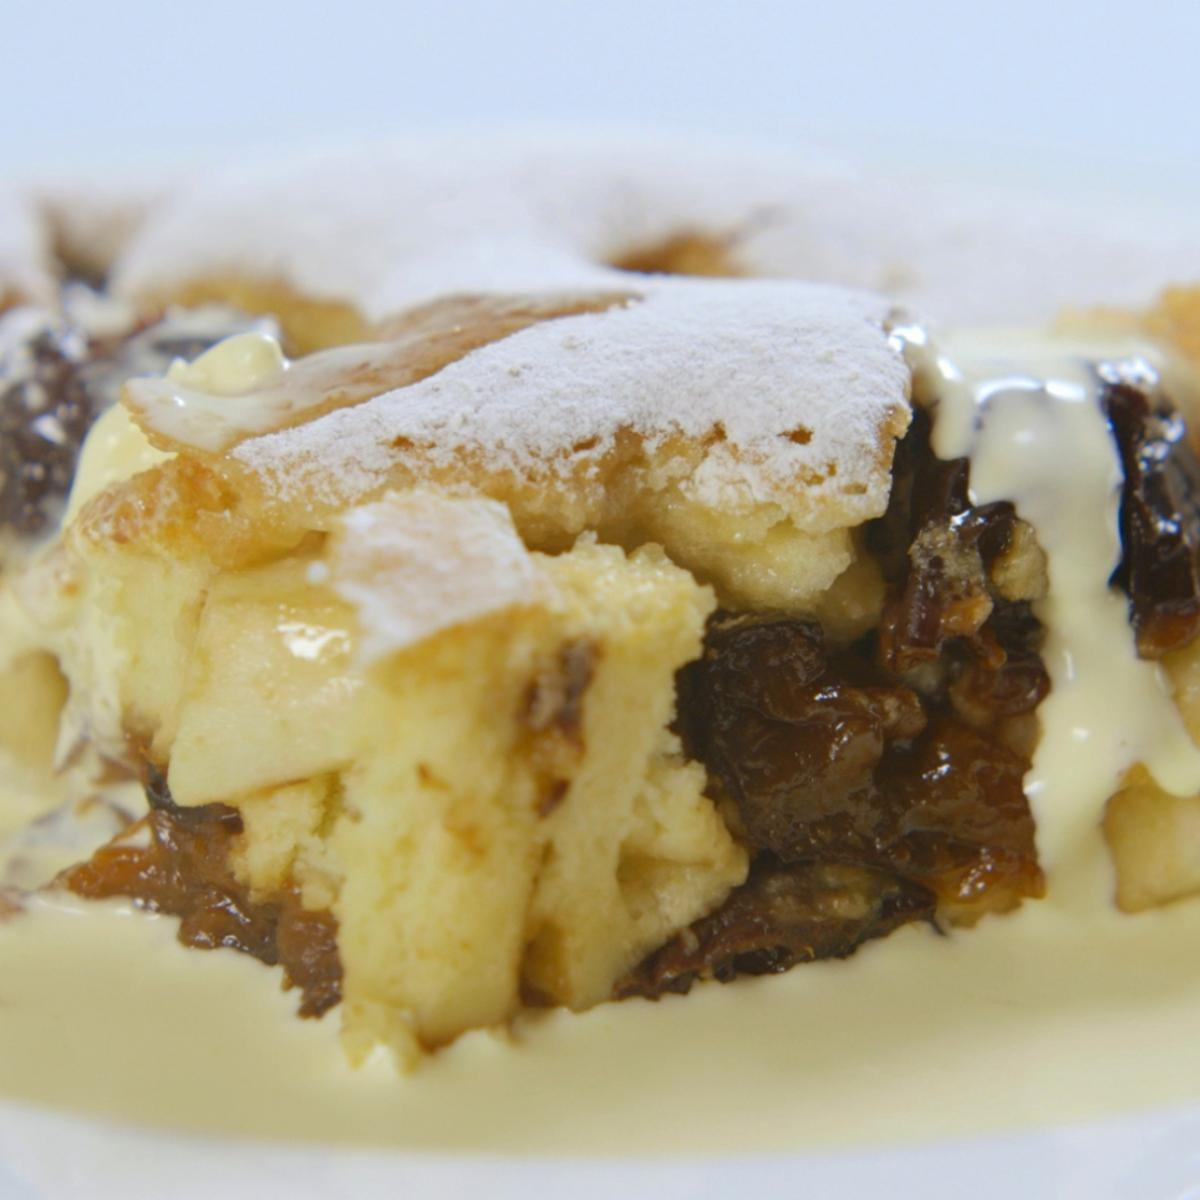 A picture of Delia's Apple, Prune and Armagnac Clafoutis recipe